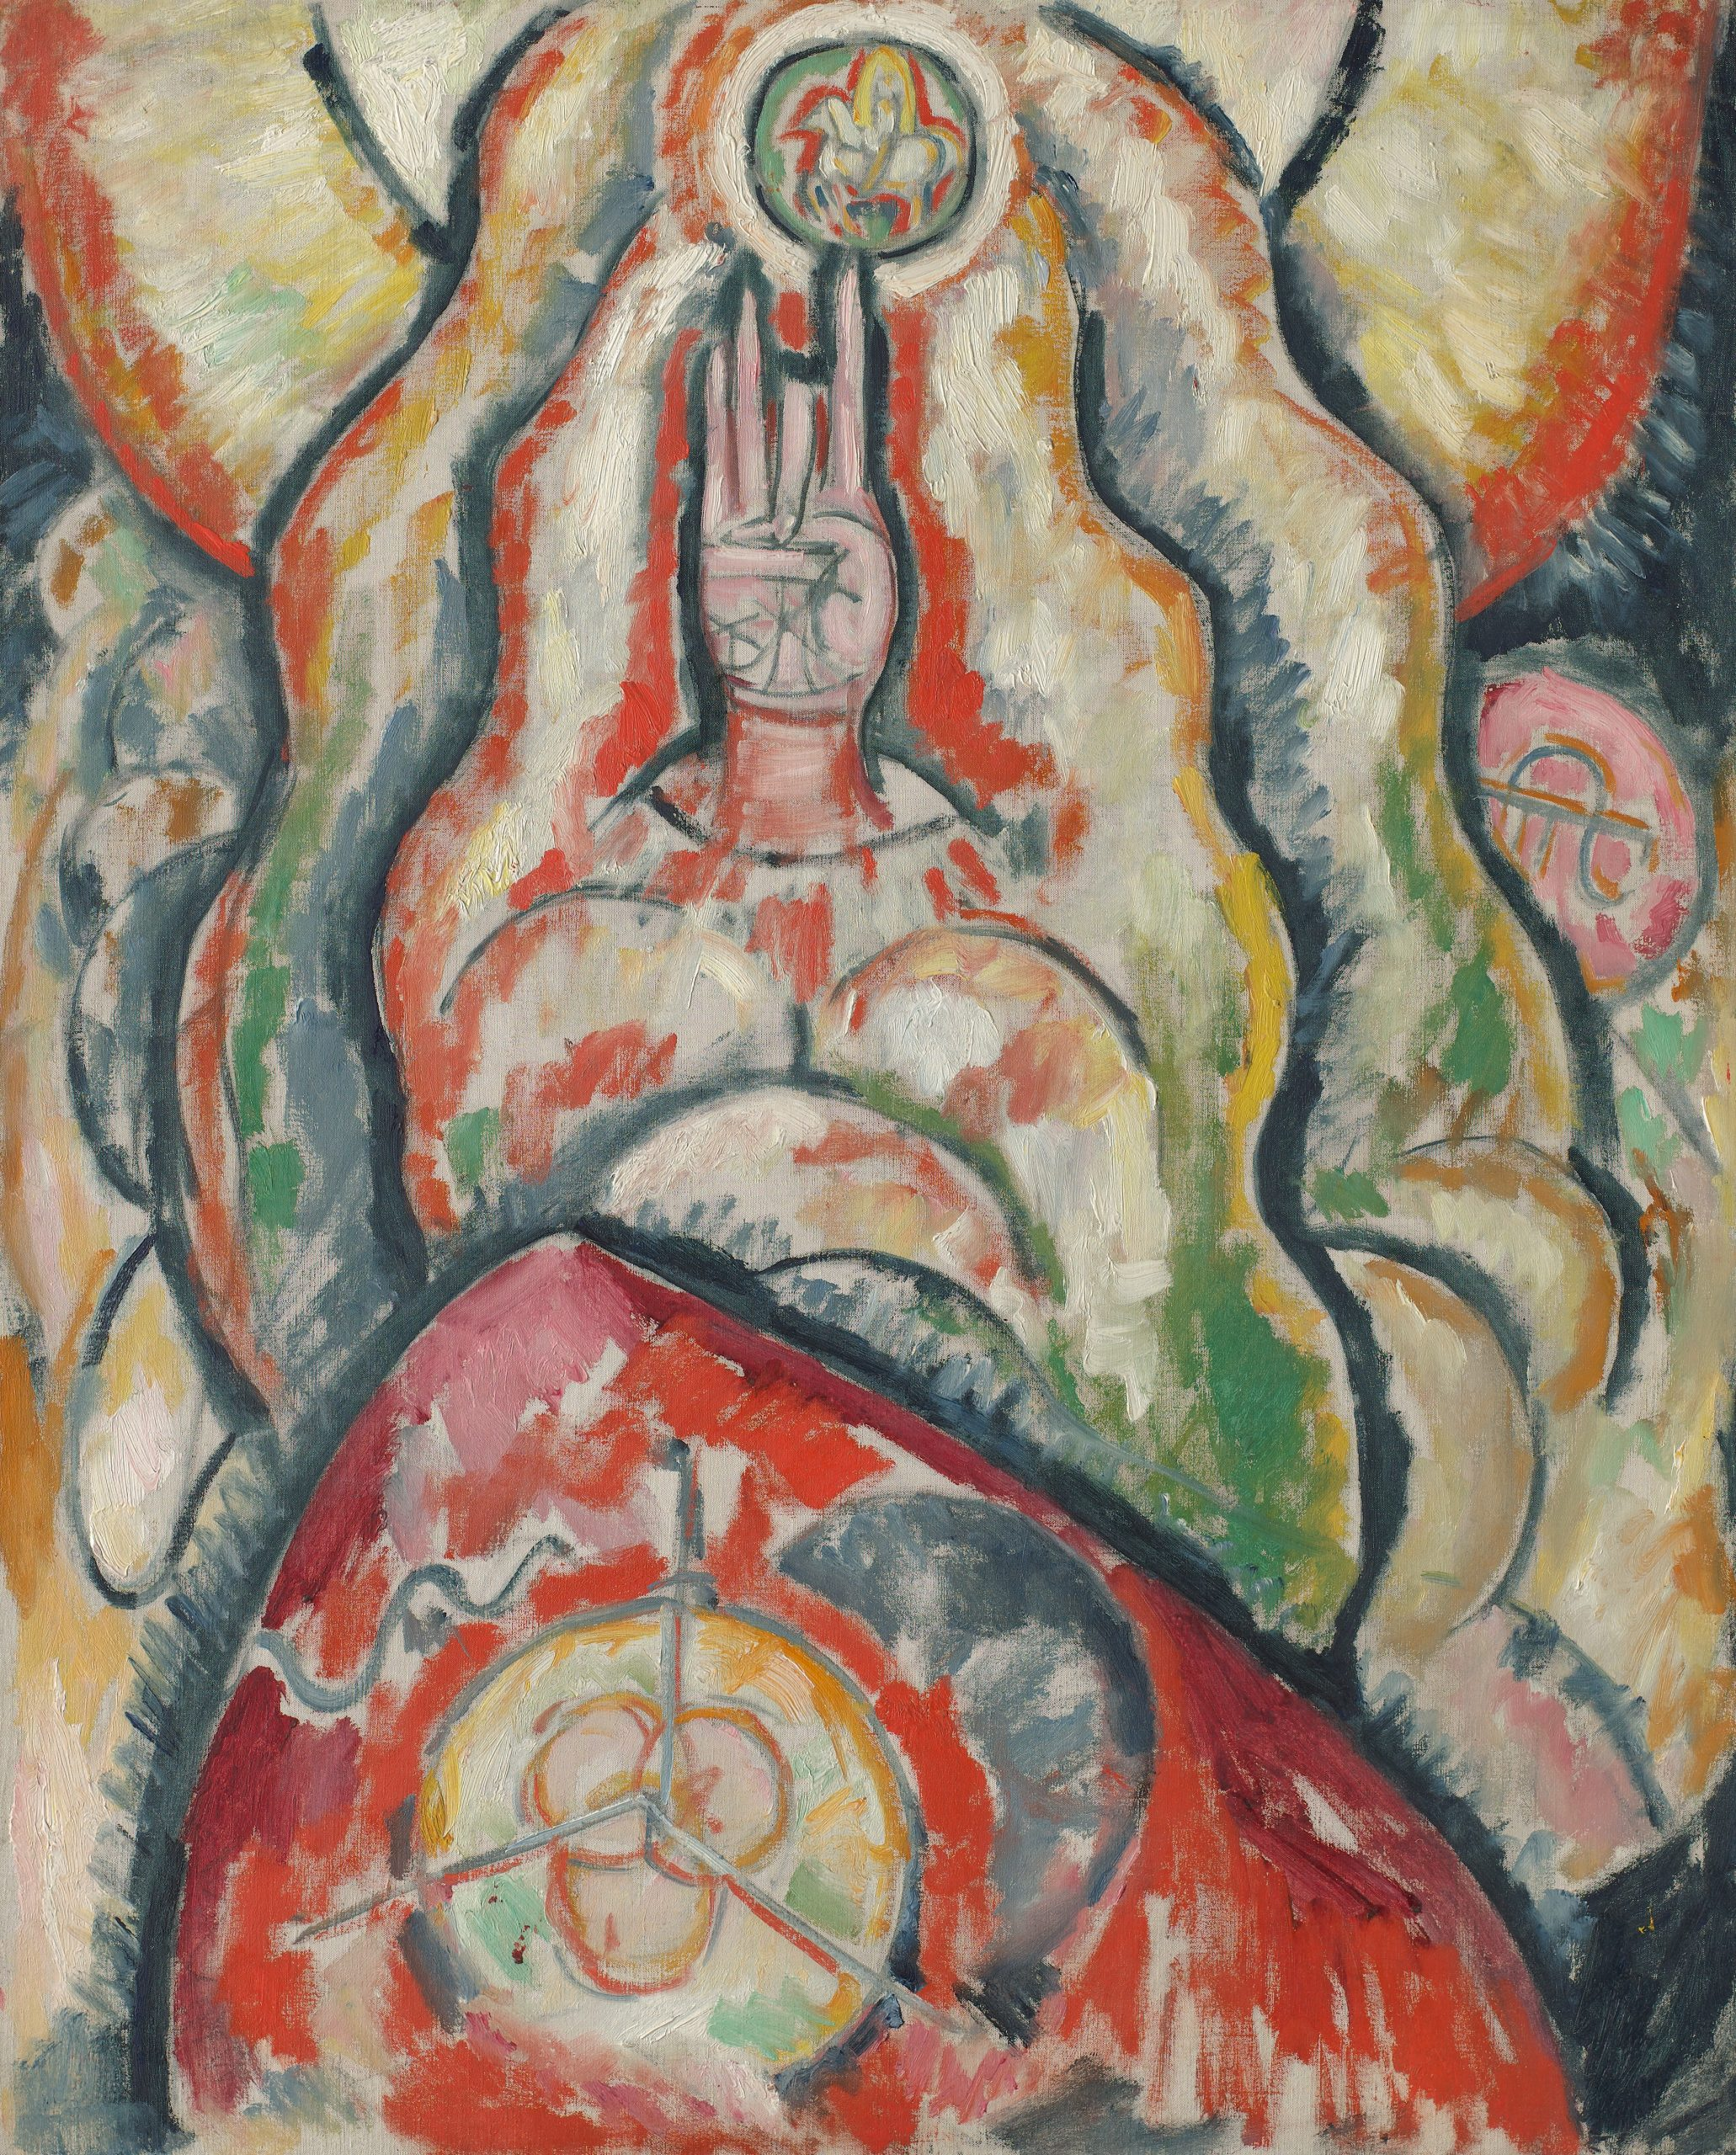 A painting of radiating mandorla shapes in red, orange and green, with a hand in the center, the thumb folded while the middle finger points at a soldier on horseback.